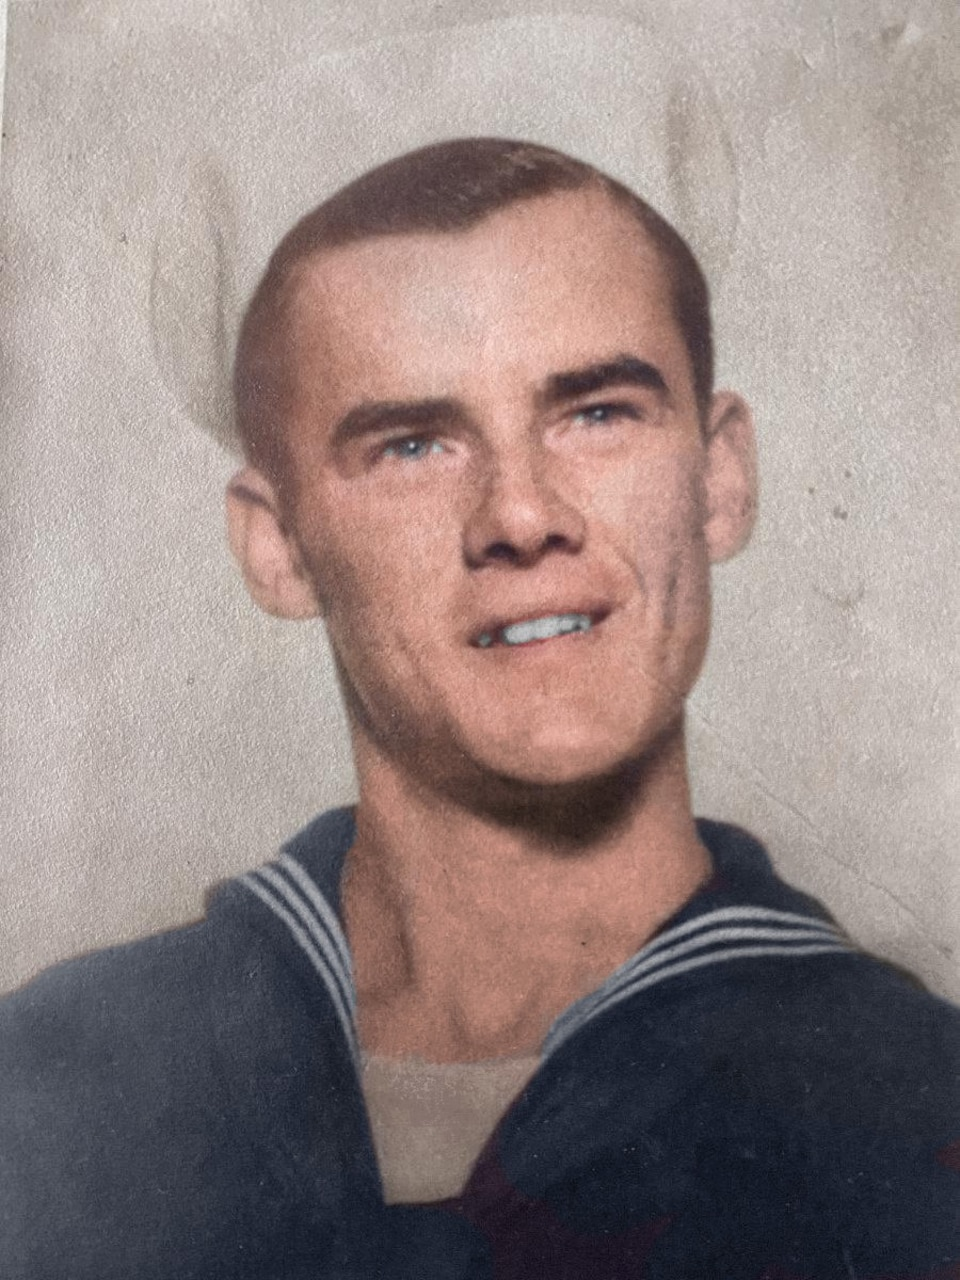 A young sailor in dress uniform smiles for an official photo.